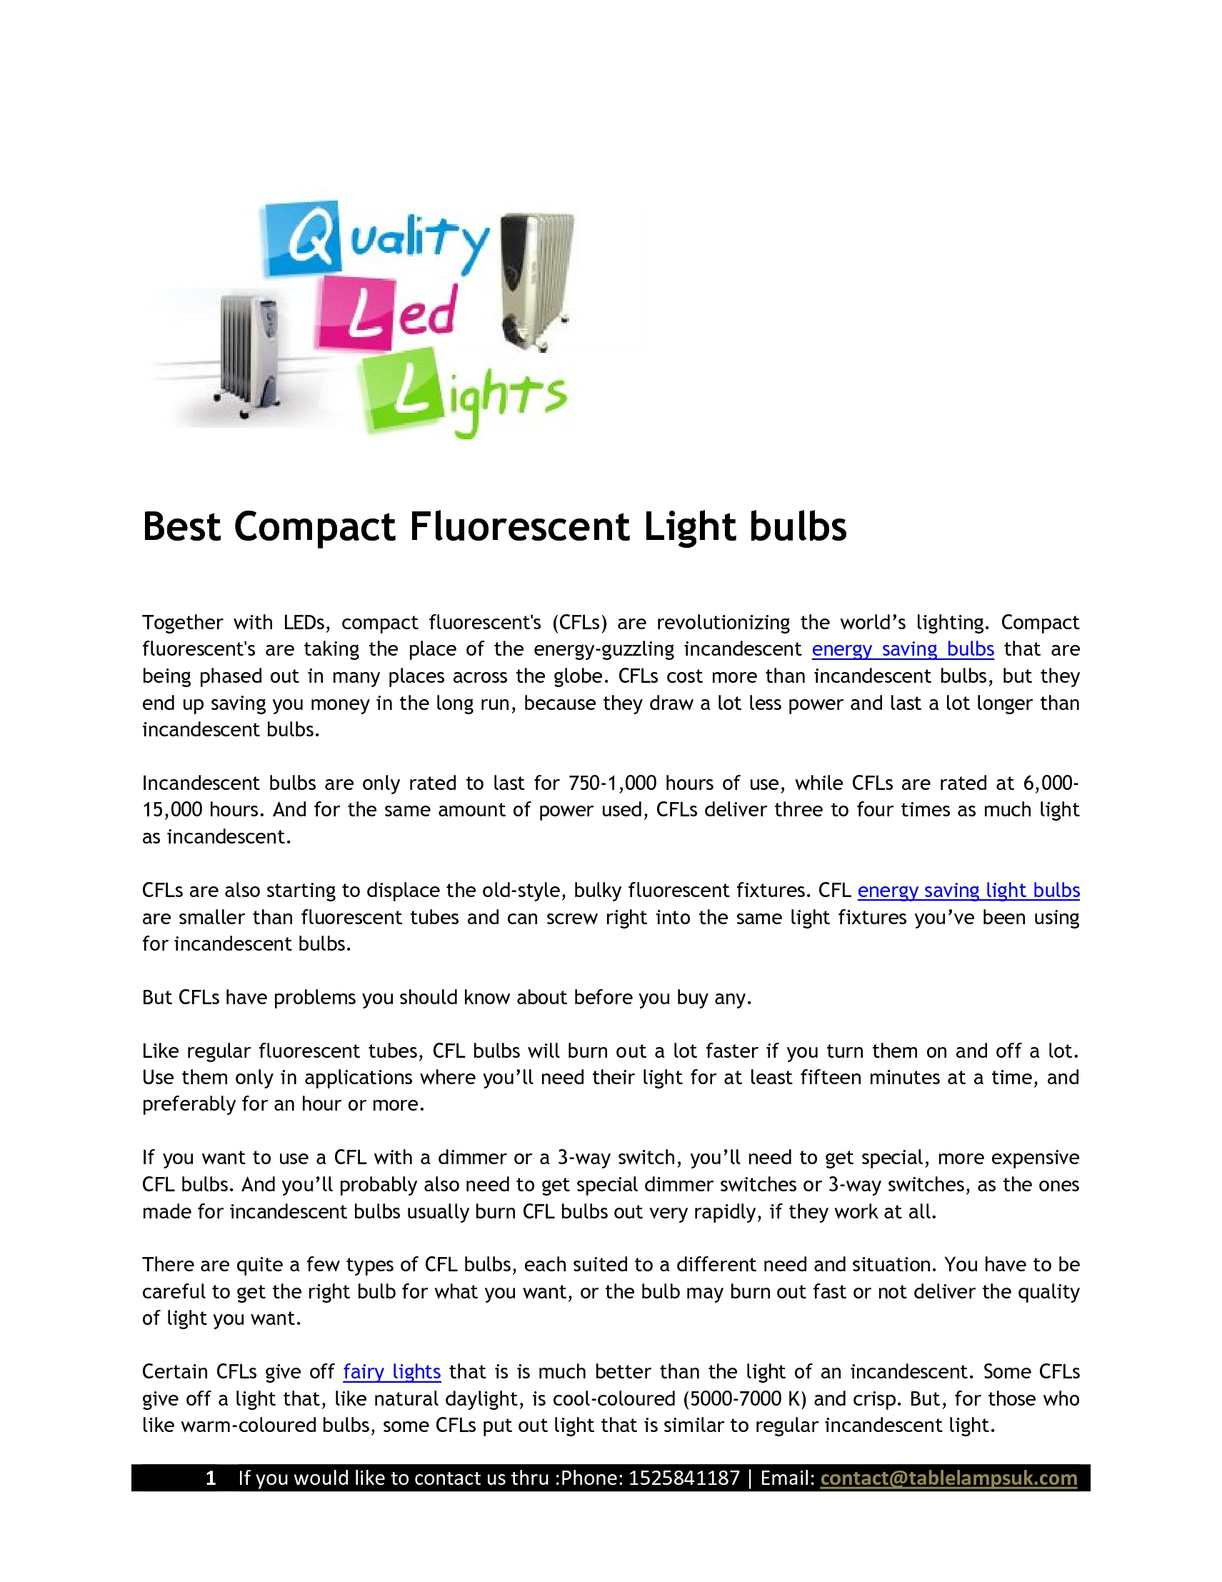 Calamo 017best Compact Fluorescent Light Bulbs How A Three Way Switch Works